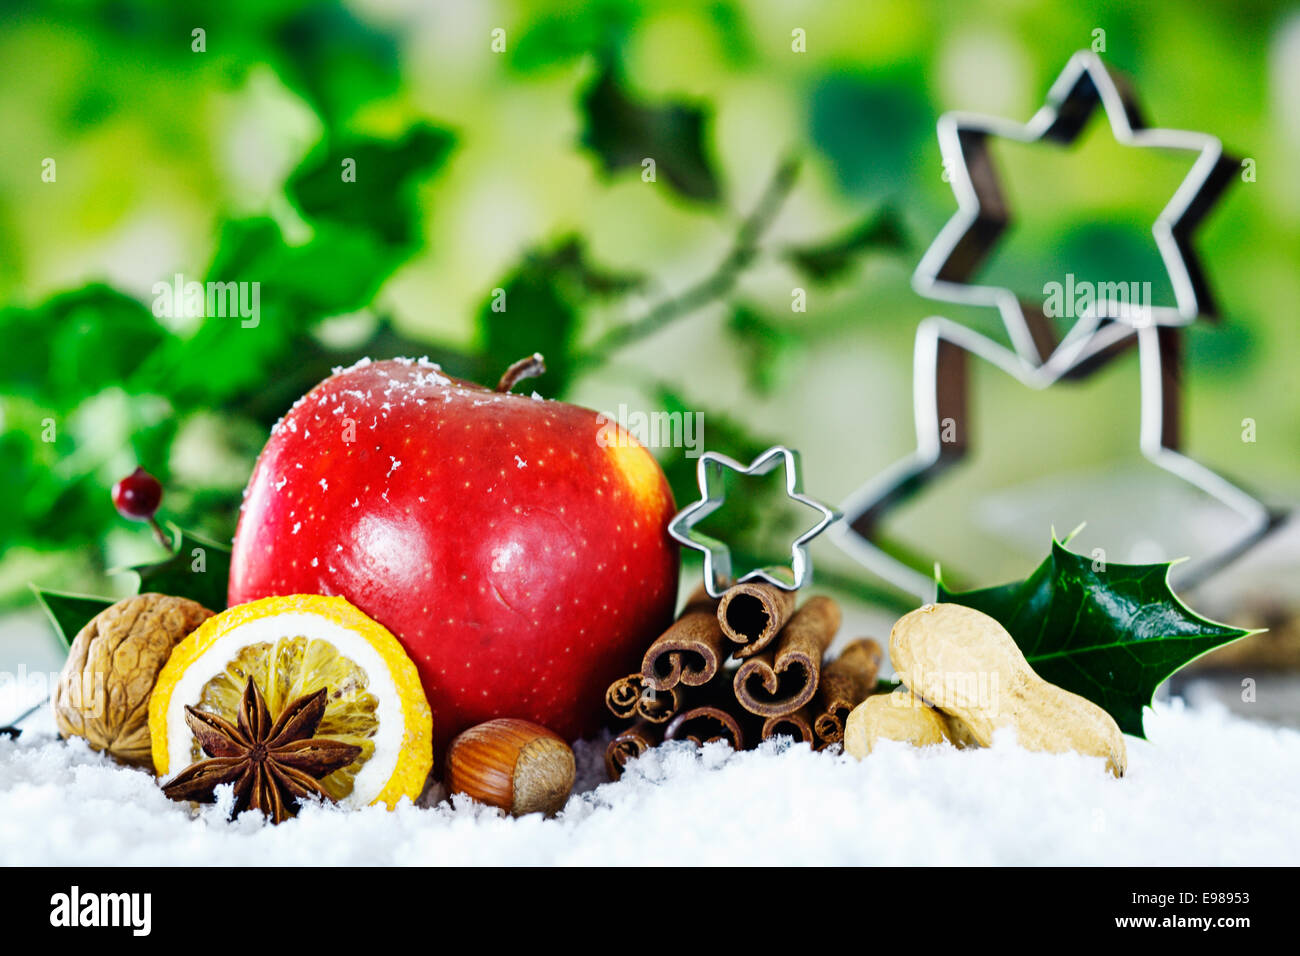 Christmas still life background with a red apple, nuts, and spices against green foliage with holly and stars Stock Photo